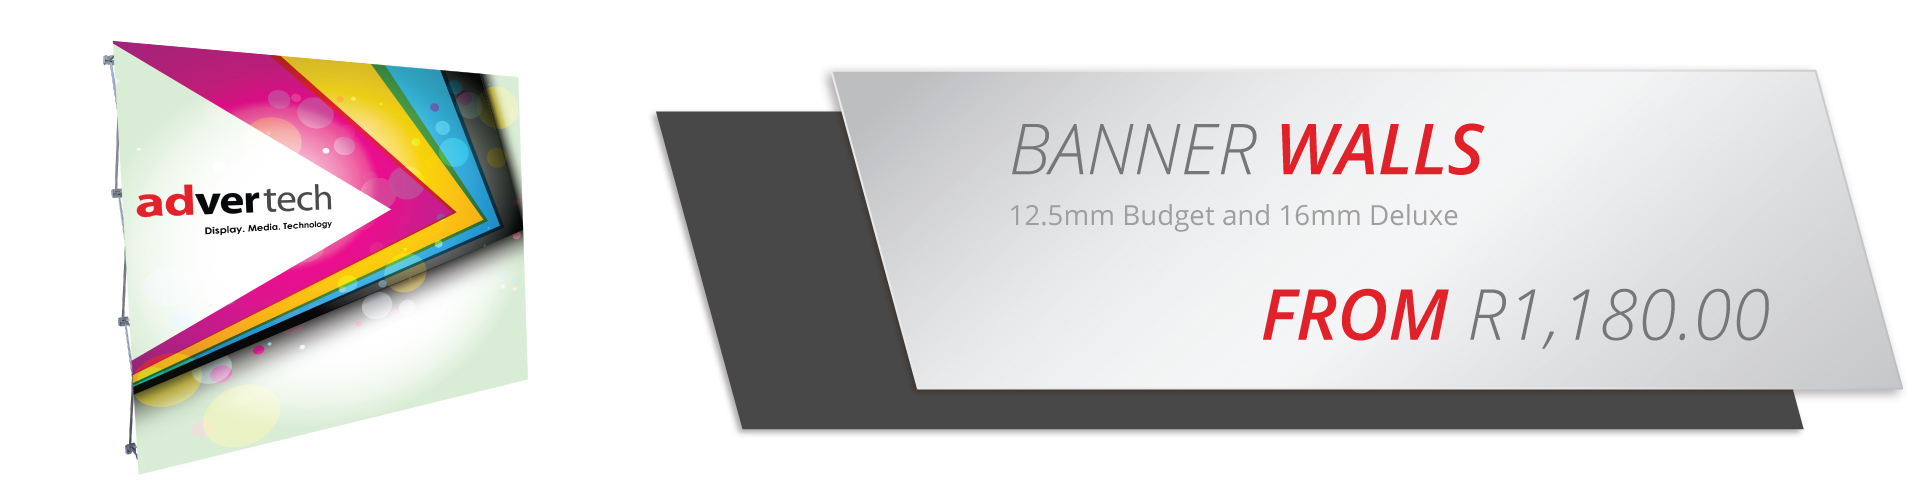 Banner Walls 12.5mm Budget and 16mm Deluxe from R1 180   AdverTech Digital Advertising & Media Displays